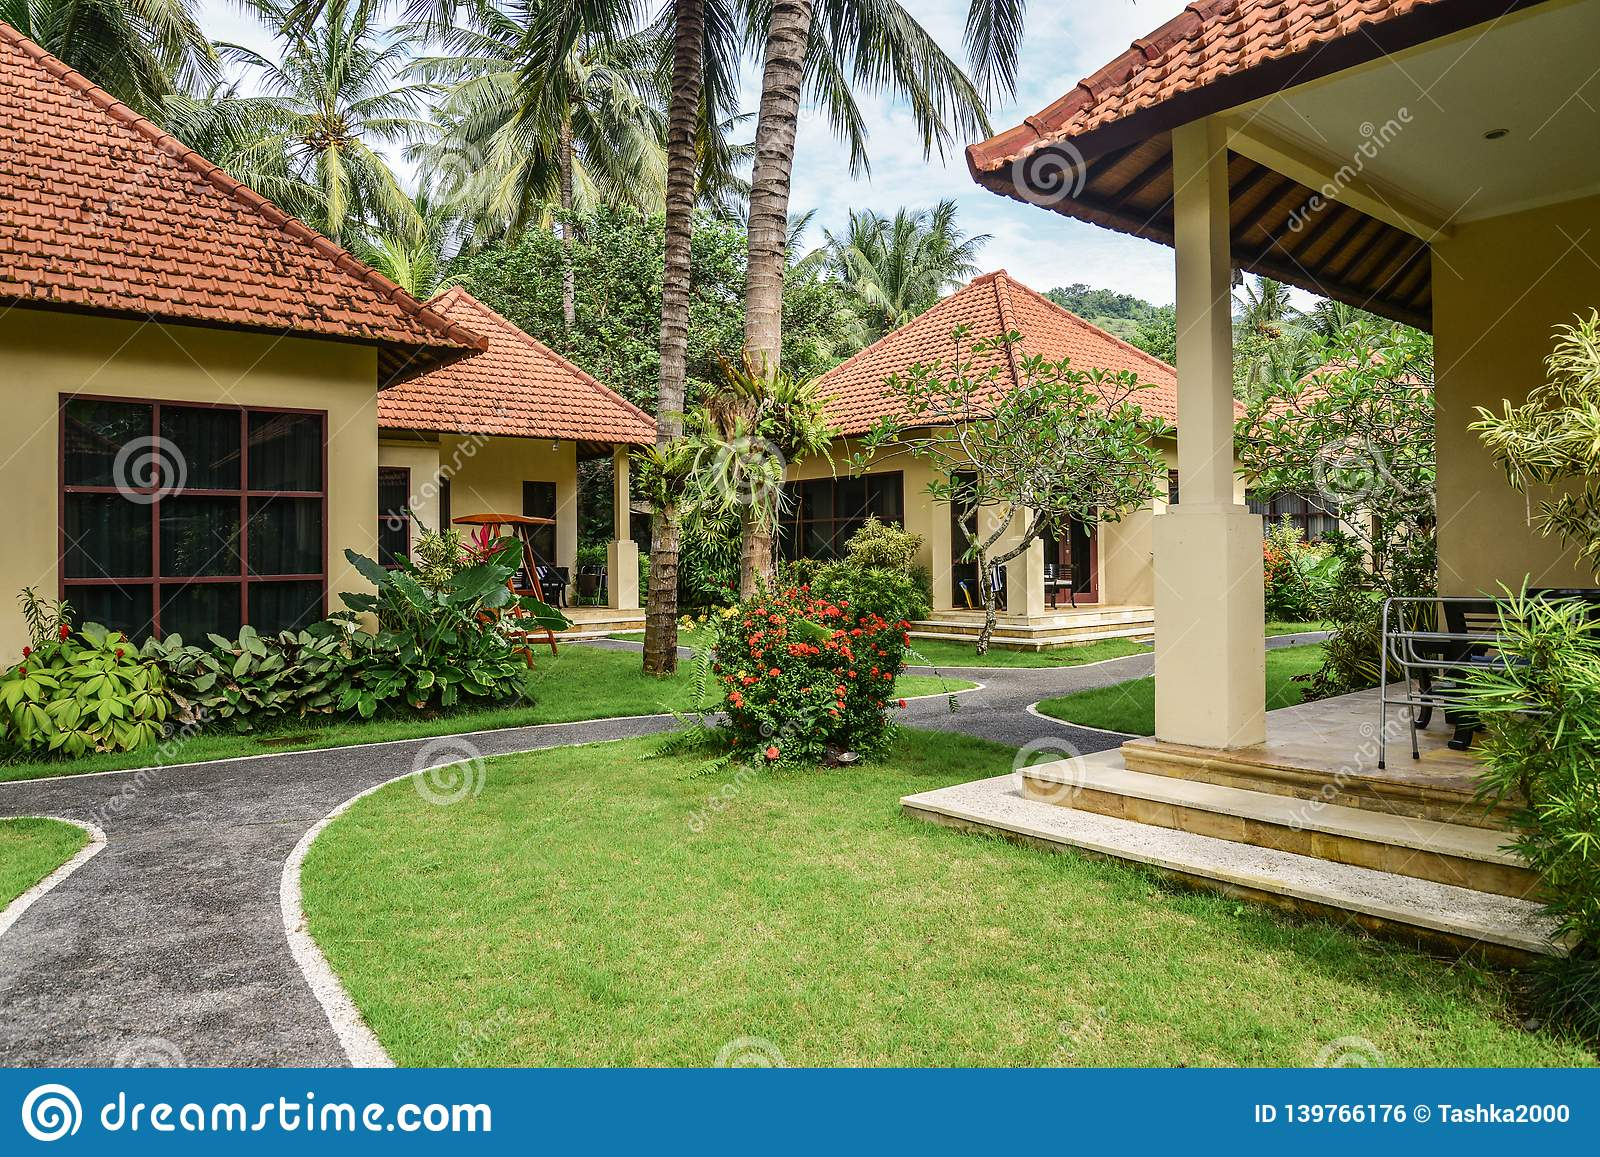 Territory Discovery Candidasa Cottages And Villas Hotel Editorial Photo Image Of Cottages Asia 139766176